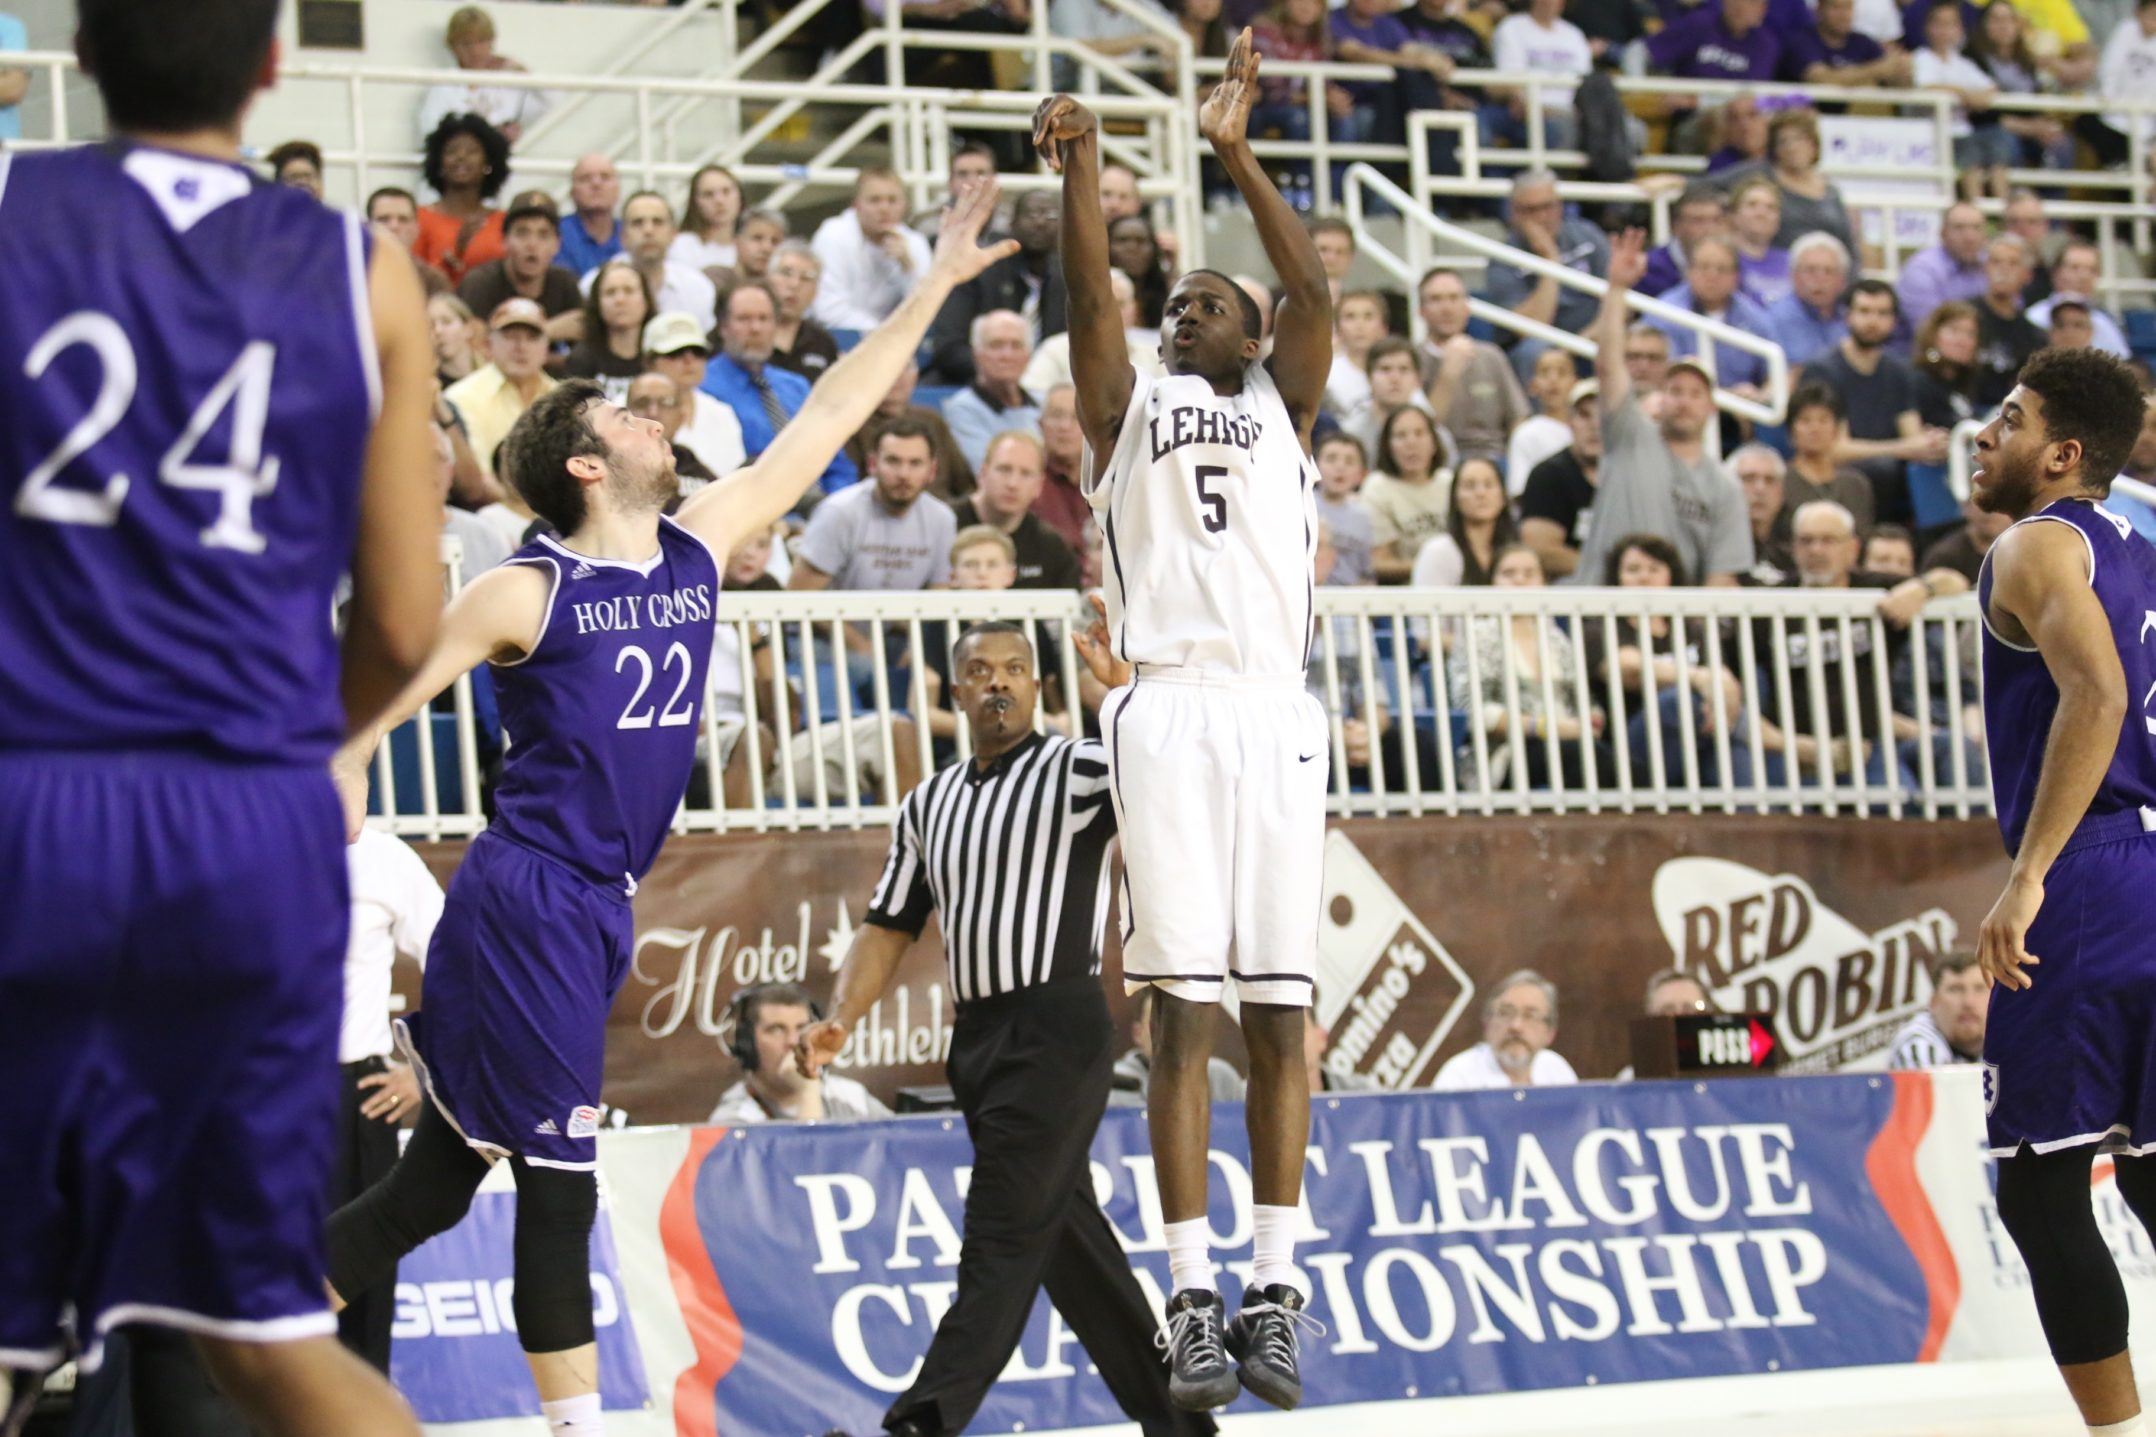 Lehigh junior Austin Price jumps and shoots for three in a heartbreaking loss against Holy Cross in the Patriot League championship game on Wednesday, March 9, 2016. The Mountain Hawks fell to the Crusaders 56-59, ending their season. (Gracie Chavers/BW staff)